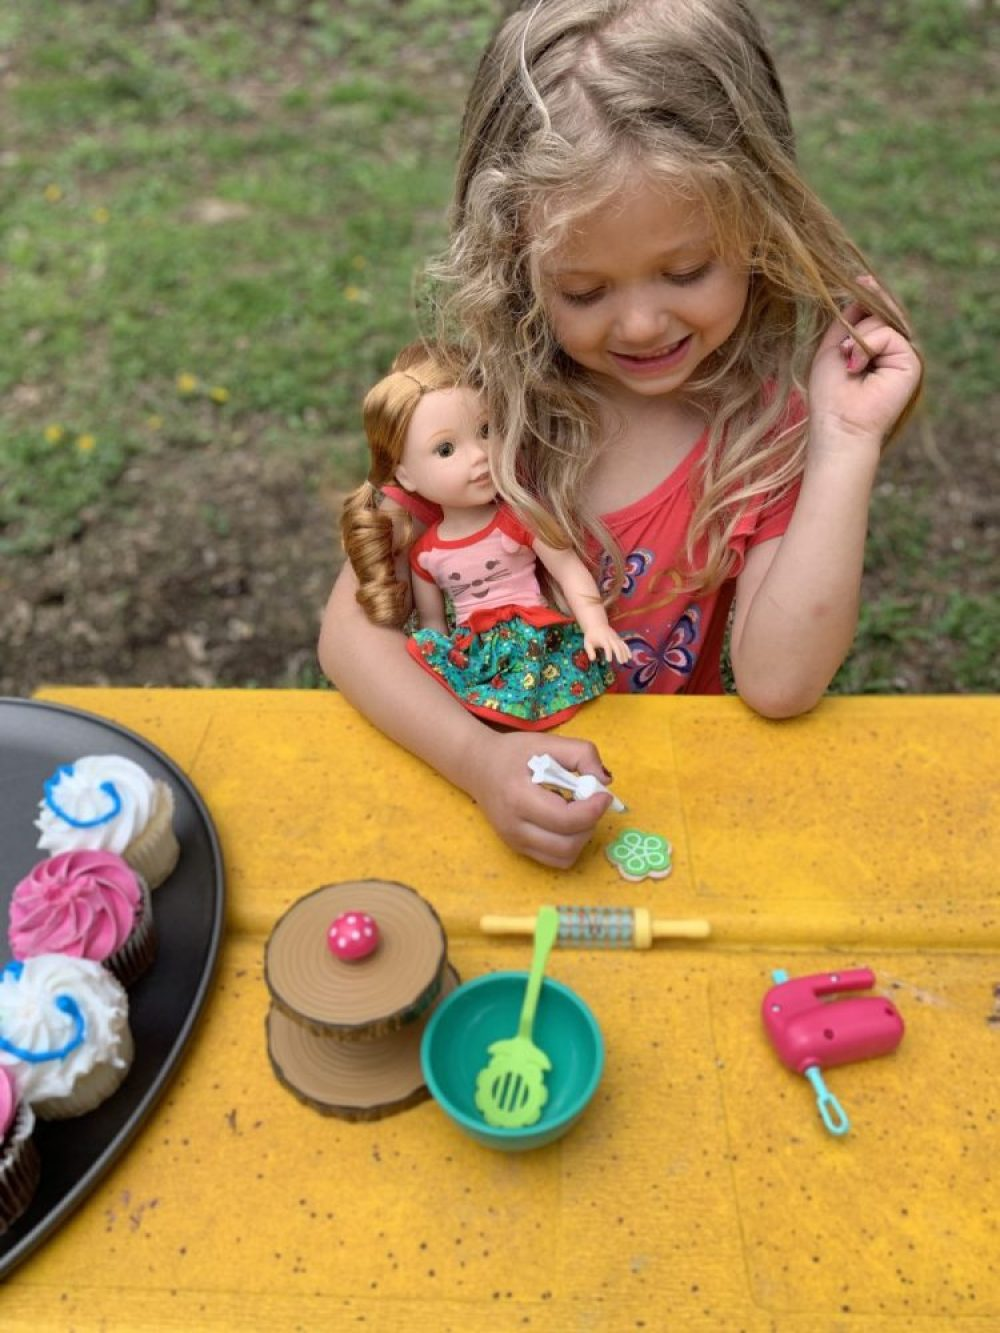 How to Make Your Daughter's 5th Birthday Special with WellieWishers 84